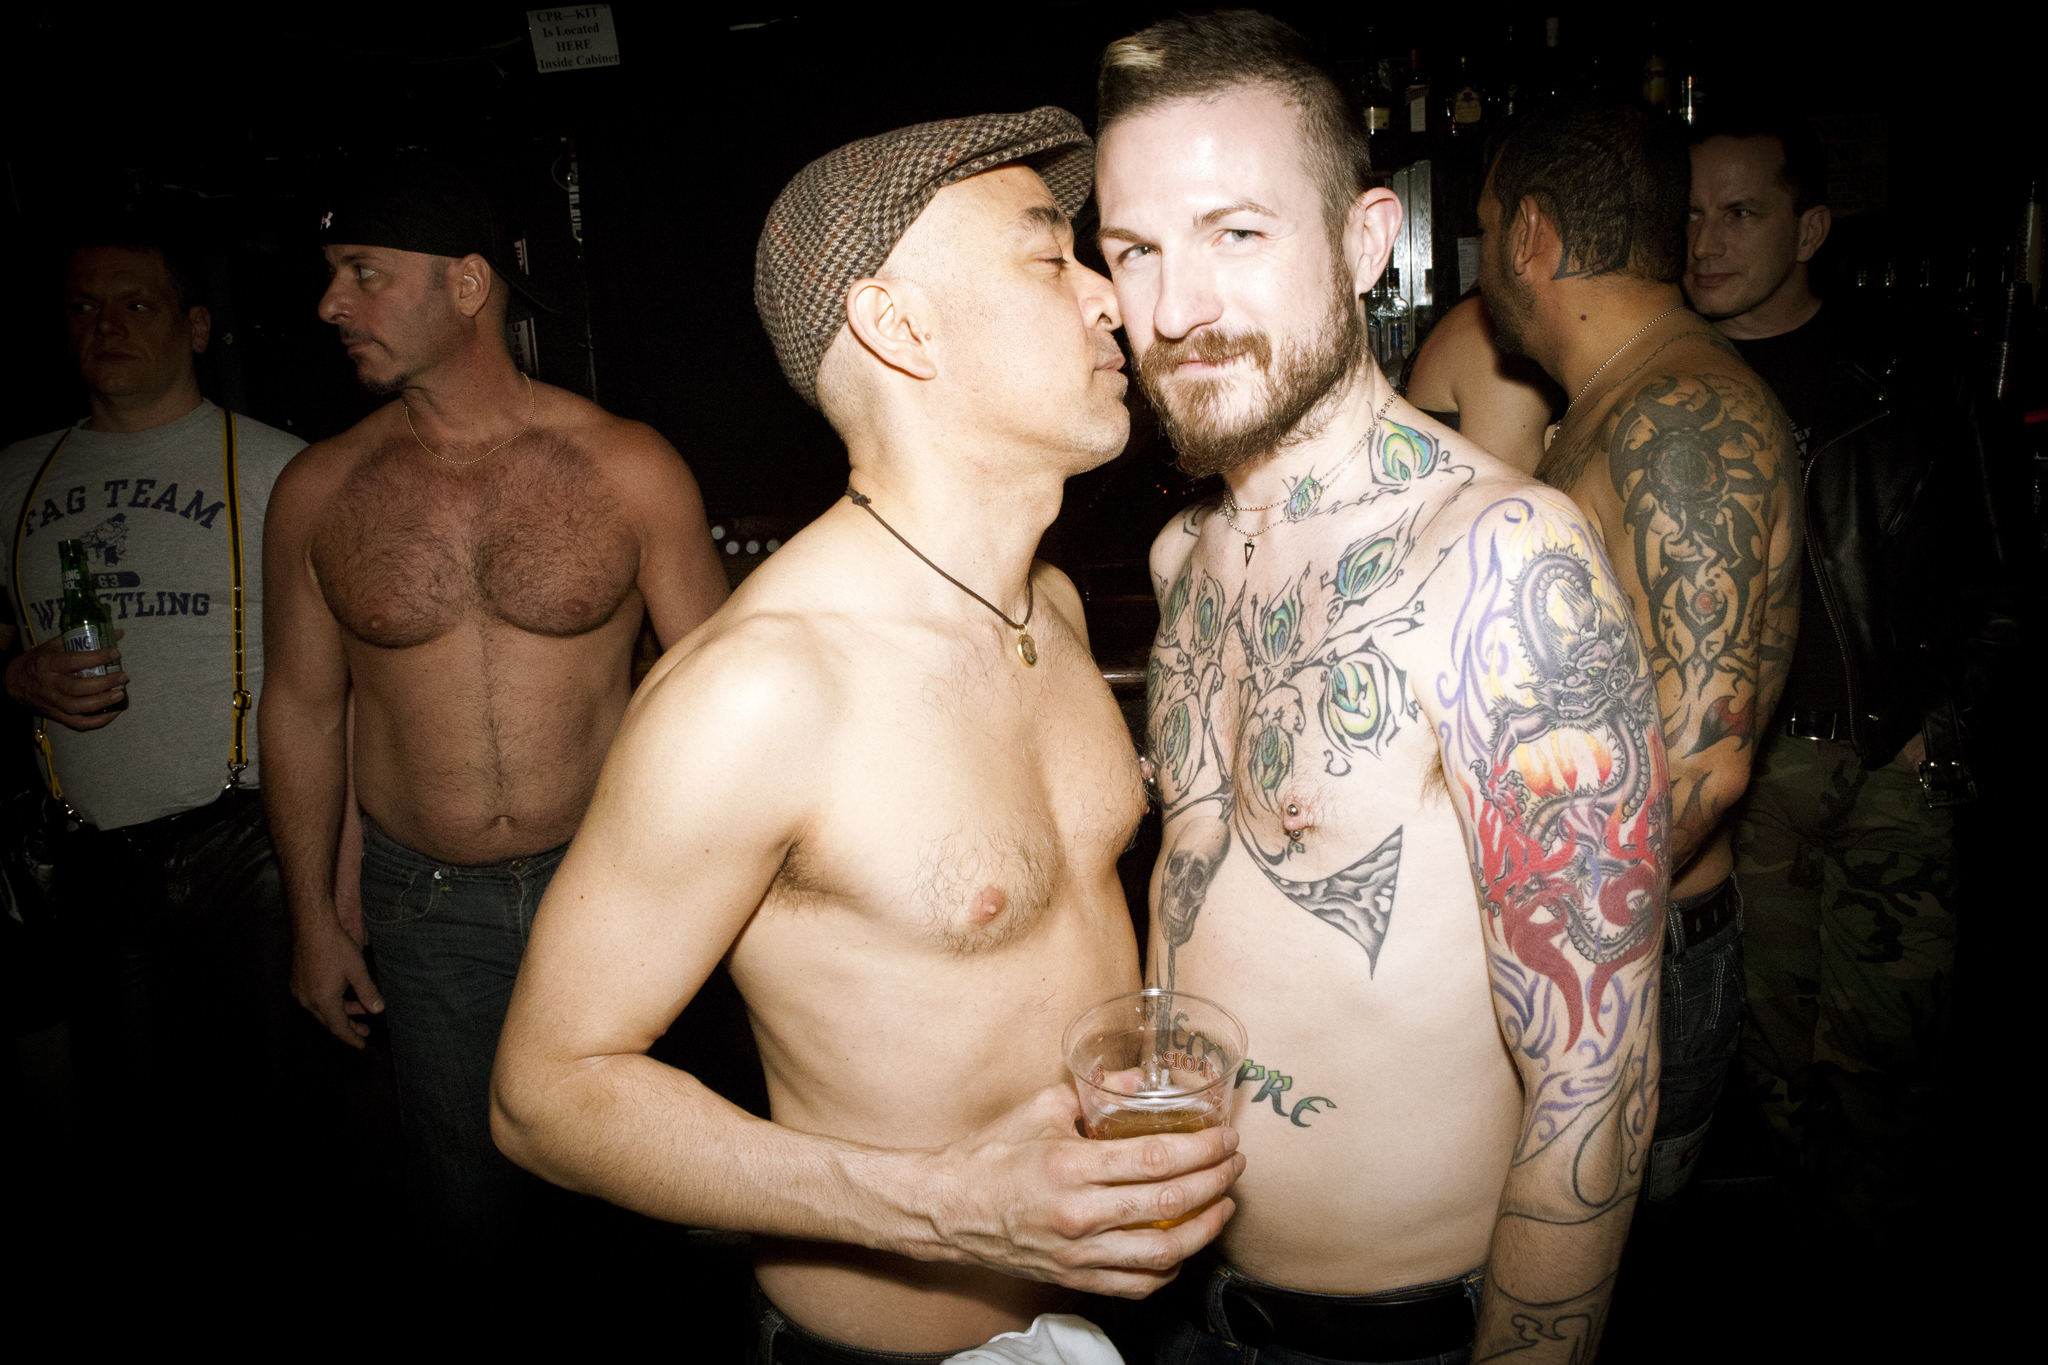 from Jude gay clubs in new york city